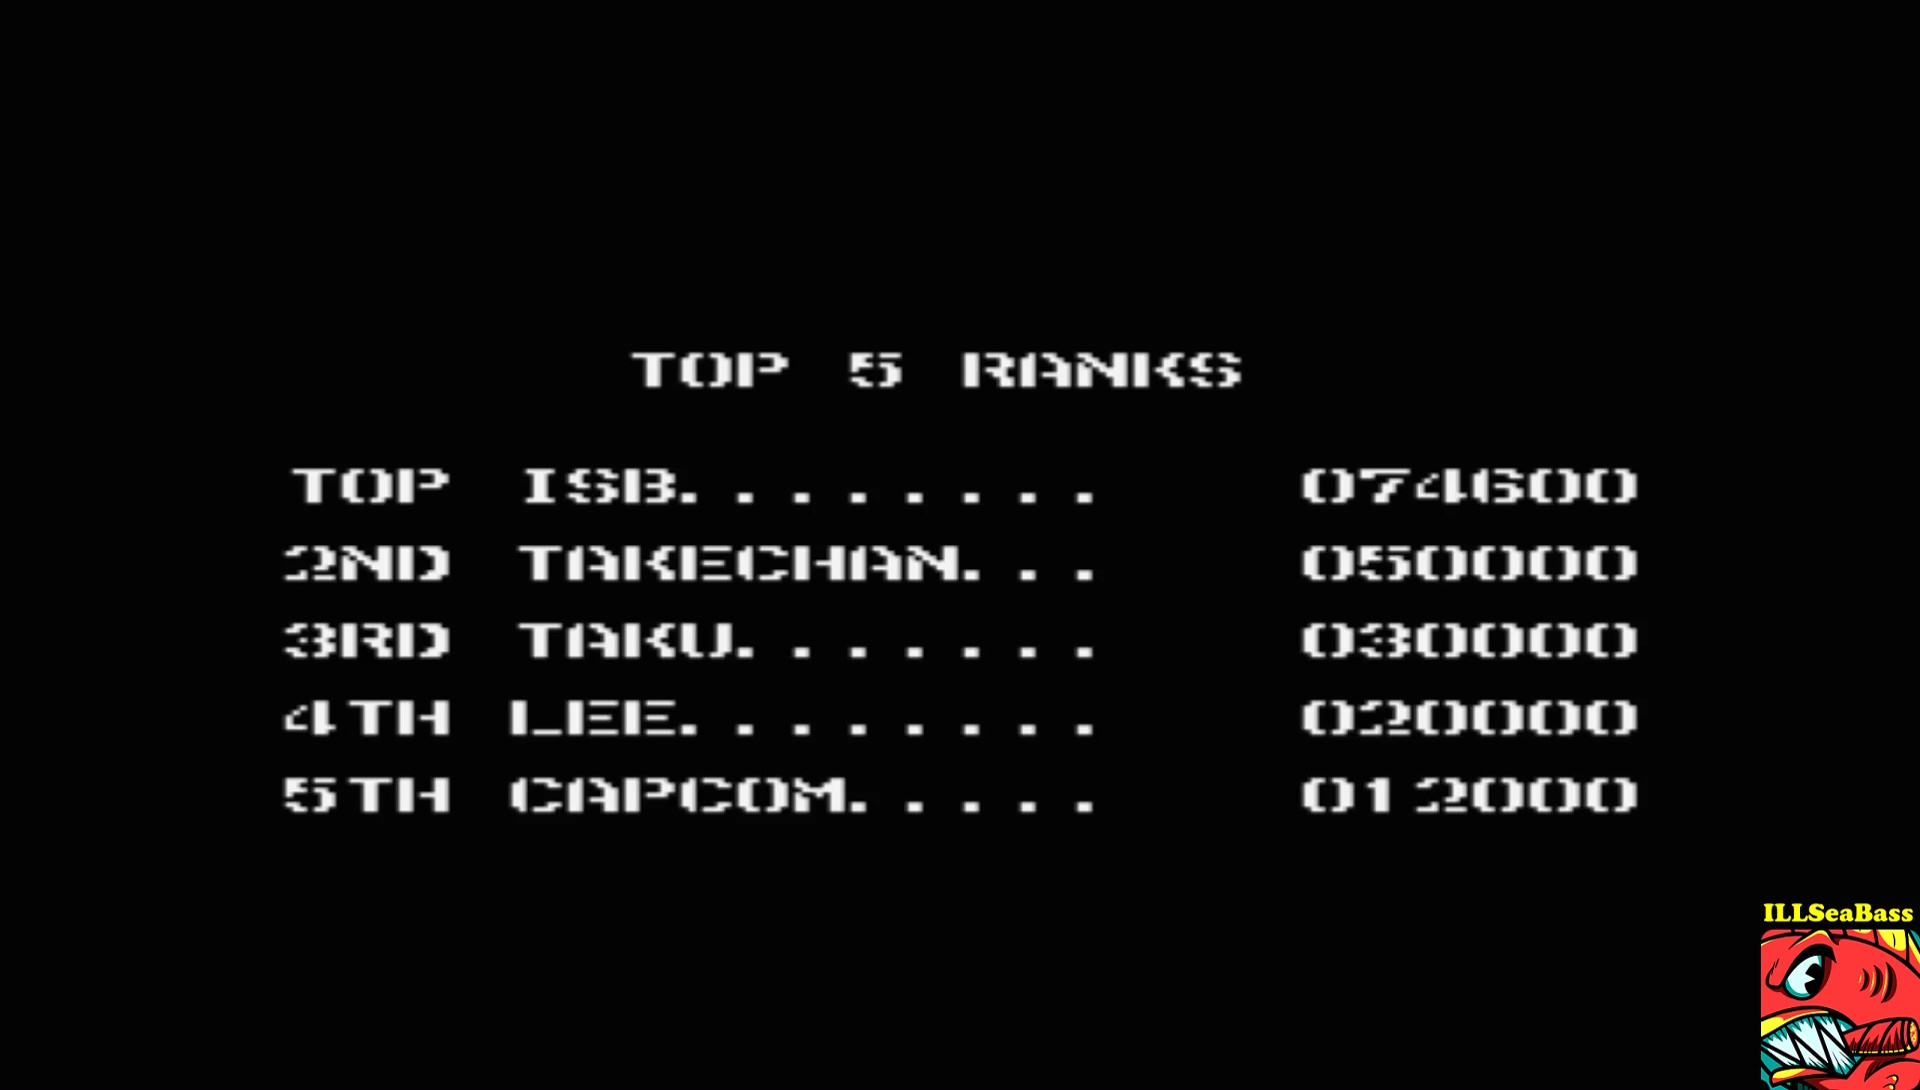 ILLSeaBass: Commando (Senjou no Ookami) (MSX Emulated) 74,600 points on 2017-04-09 19:49:36